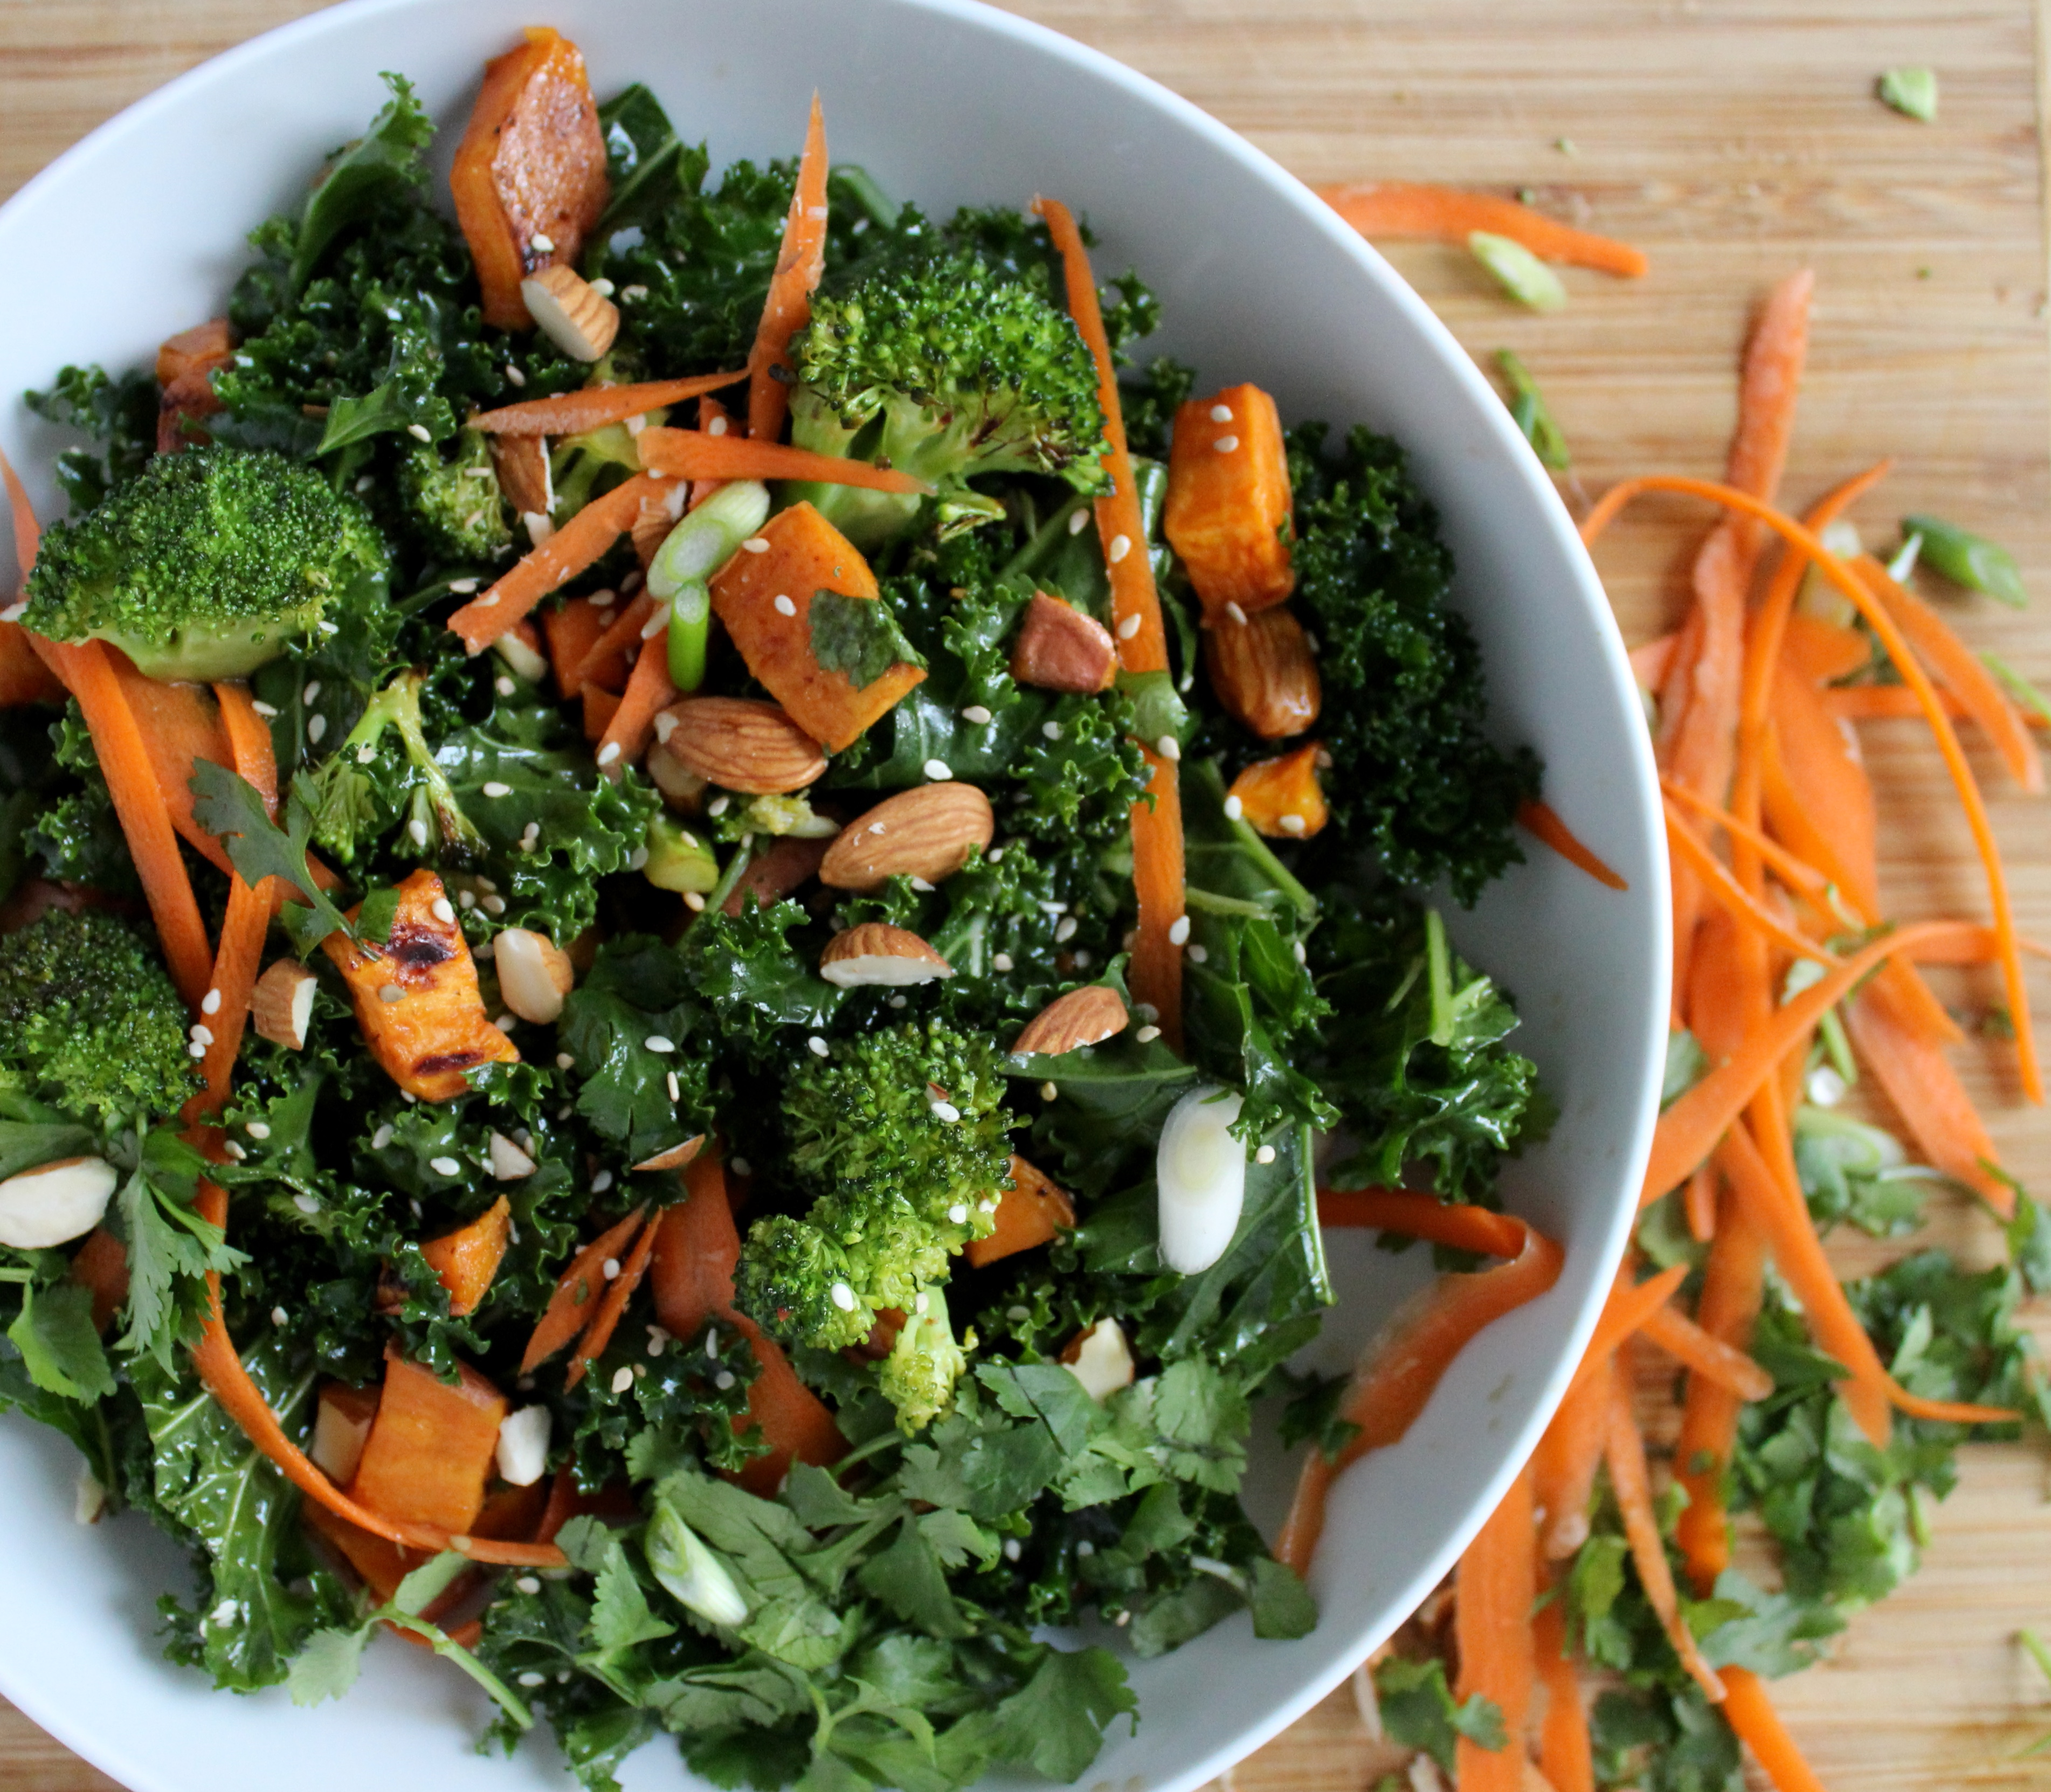 Warm Kale, Roasted Broccoli and Sweet Potato Salad with Sesame Vinaigrette